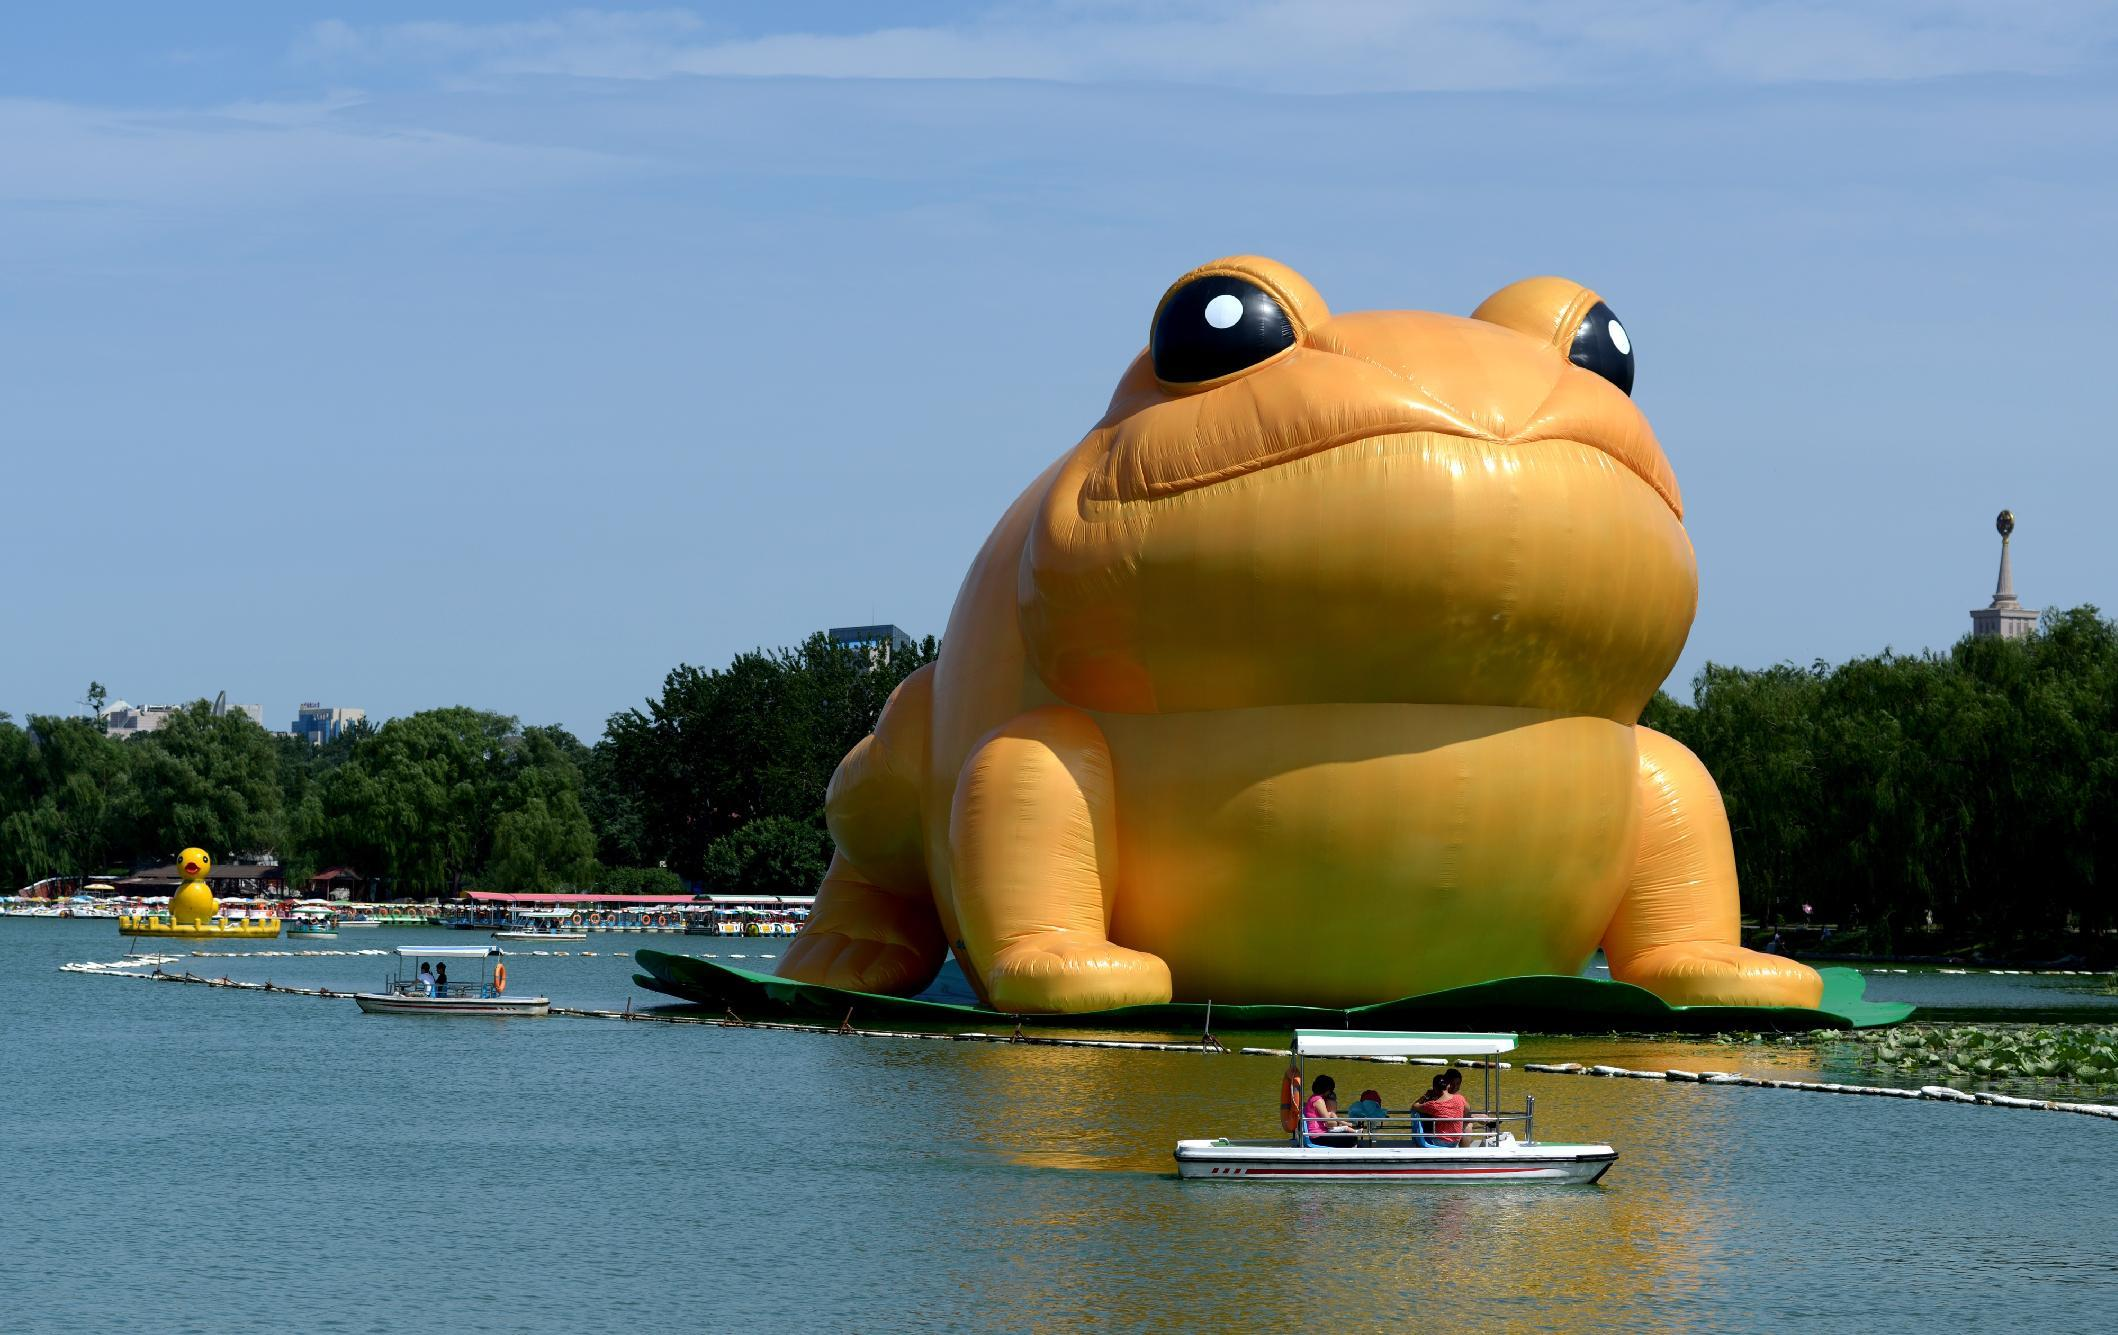 A 22-metre-high inflatable toad at Yuyuantan park in Beijing, on July 21, 2014 (AFP Photo/Wang Zhao)